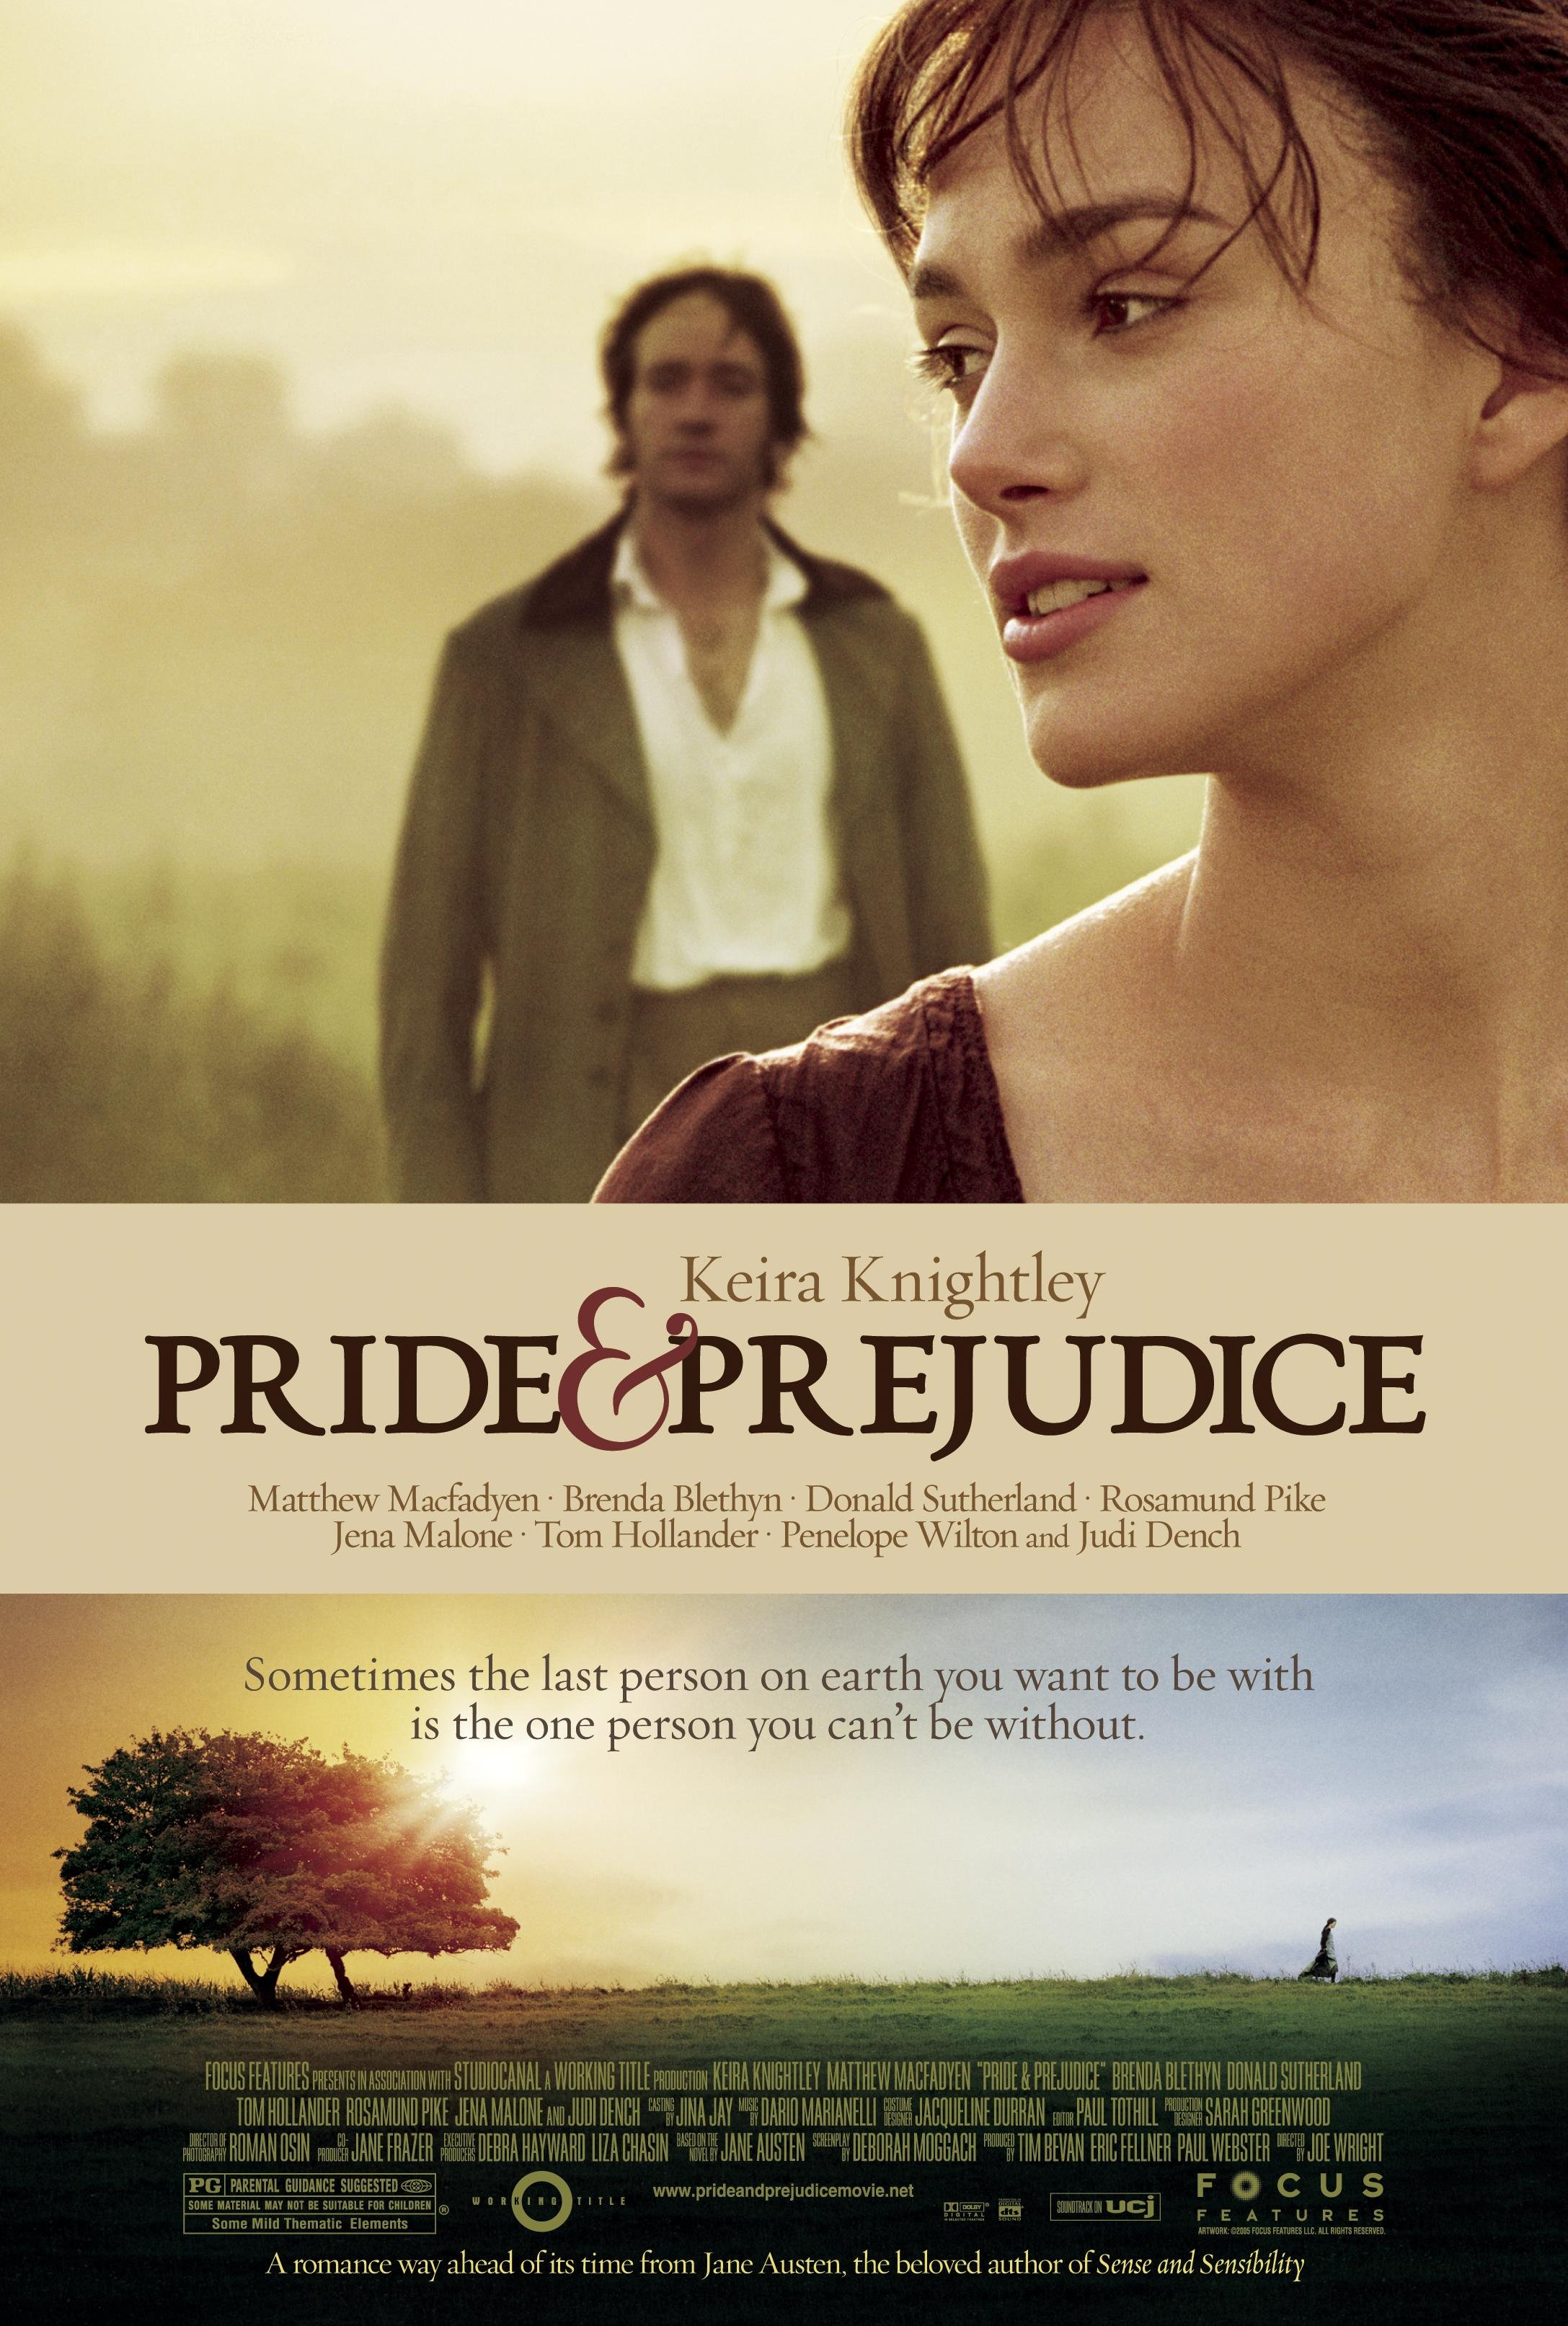 Pride and Prejudice Film Showing